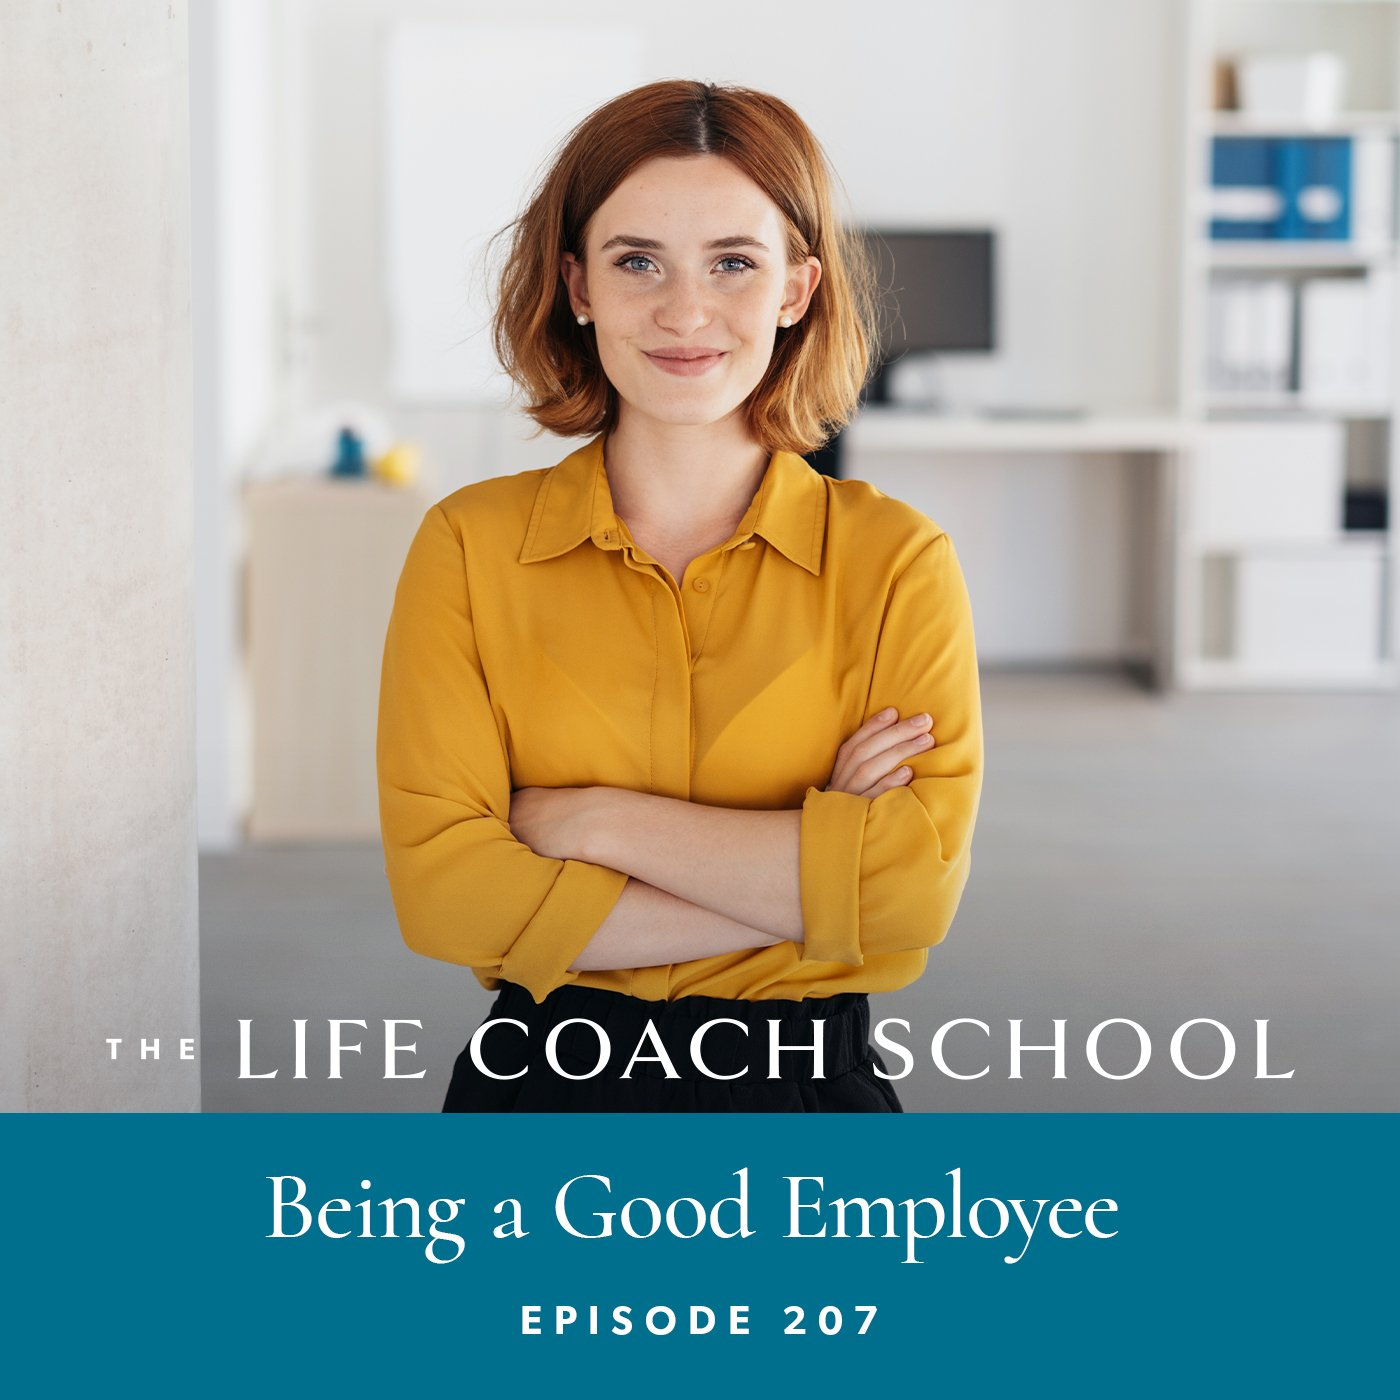 The Life Coach School Podcast with Brooke Castillo | Episode 207 | Being a Good Employee